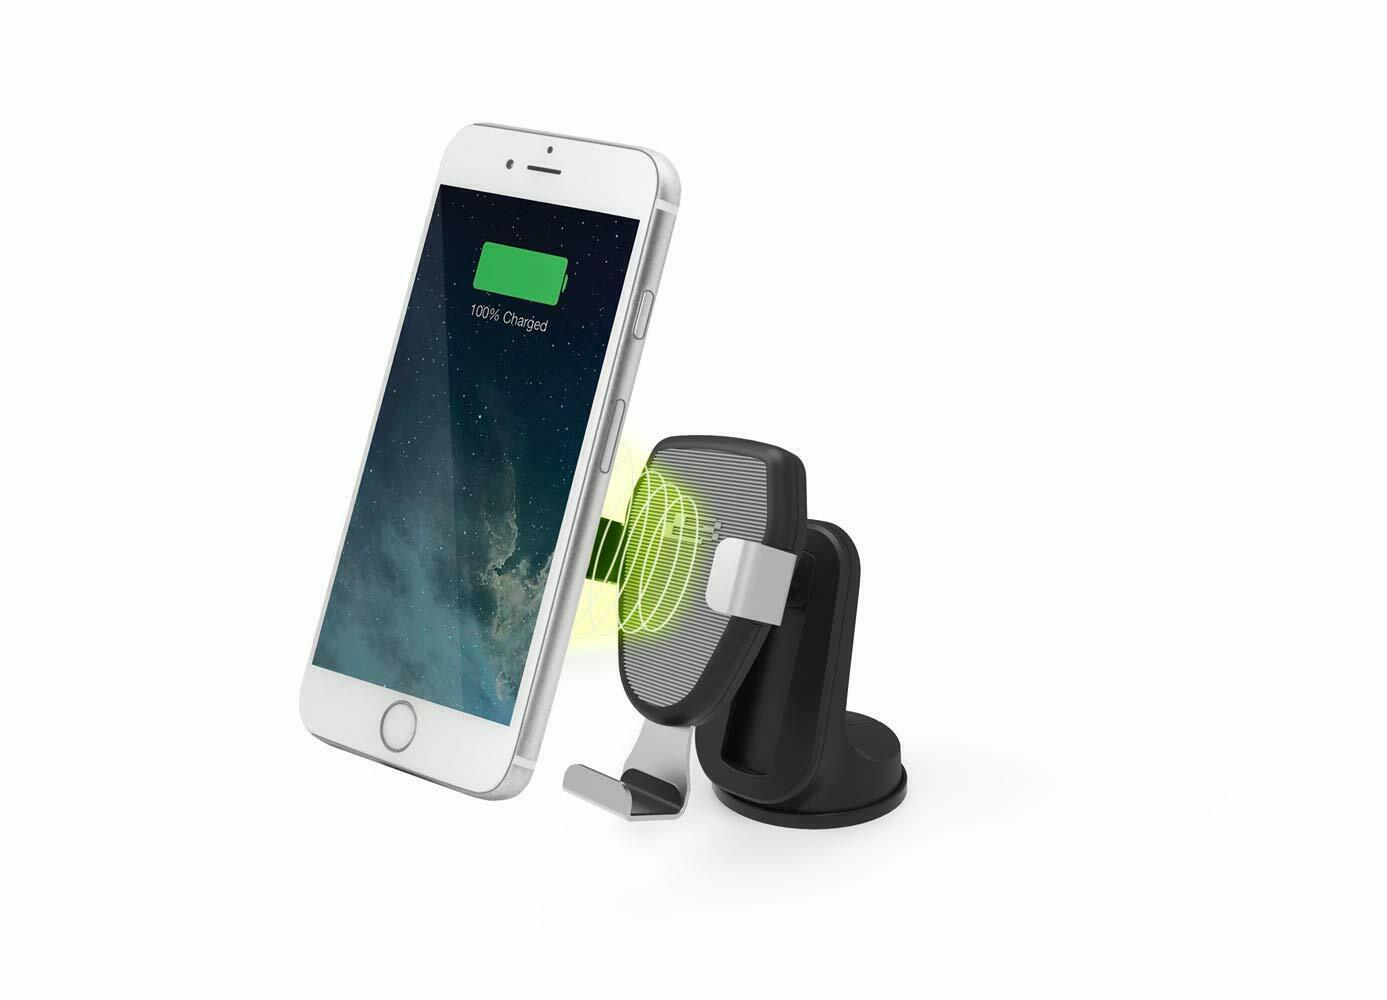 Bracketron 10W Qi Wireless Charging Gravity Mount for Dash or Vent BT29722 PwrUp